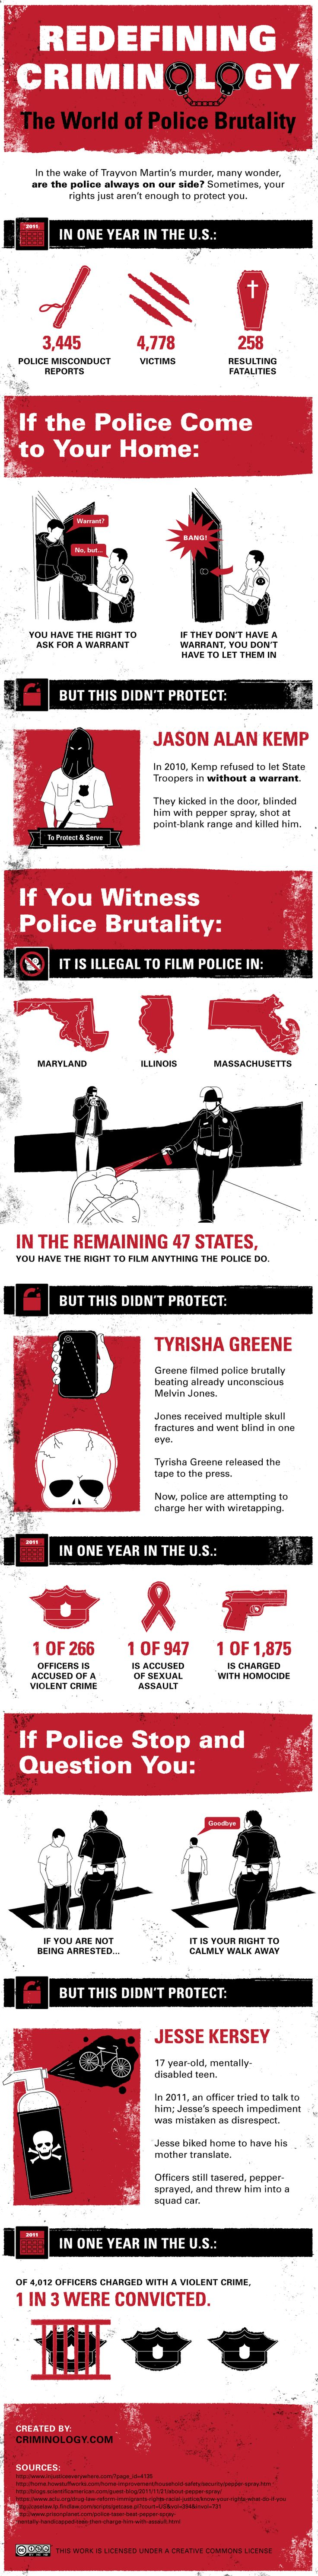 Redefining Criminology: The World of Police Brutality - RELATED: What Should I Do If I'm Arrested In Minnesota? Minneapolis Arrest Tips -  http://minnesotaattorney.com/what-should-i-do-if-im-arrested-in-minnesota-minneapolis-arrest-tips/    Thank you http://criminology.com for the graphic